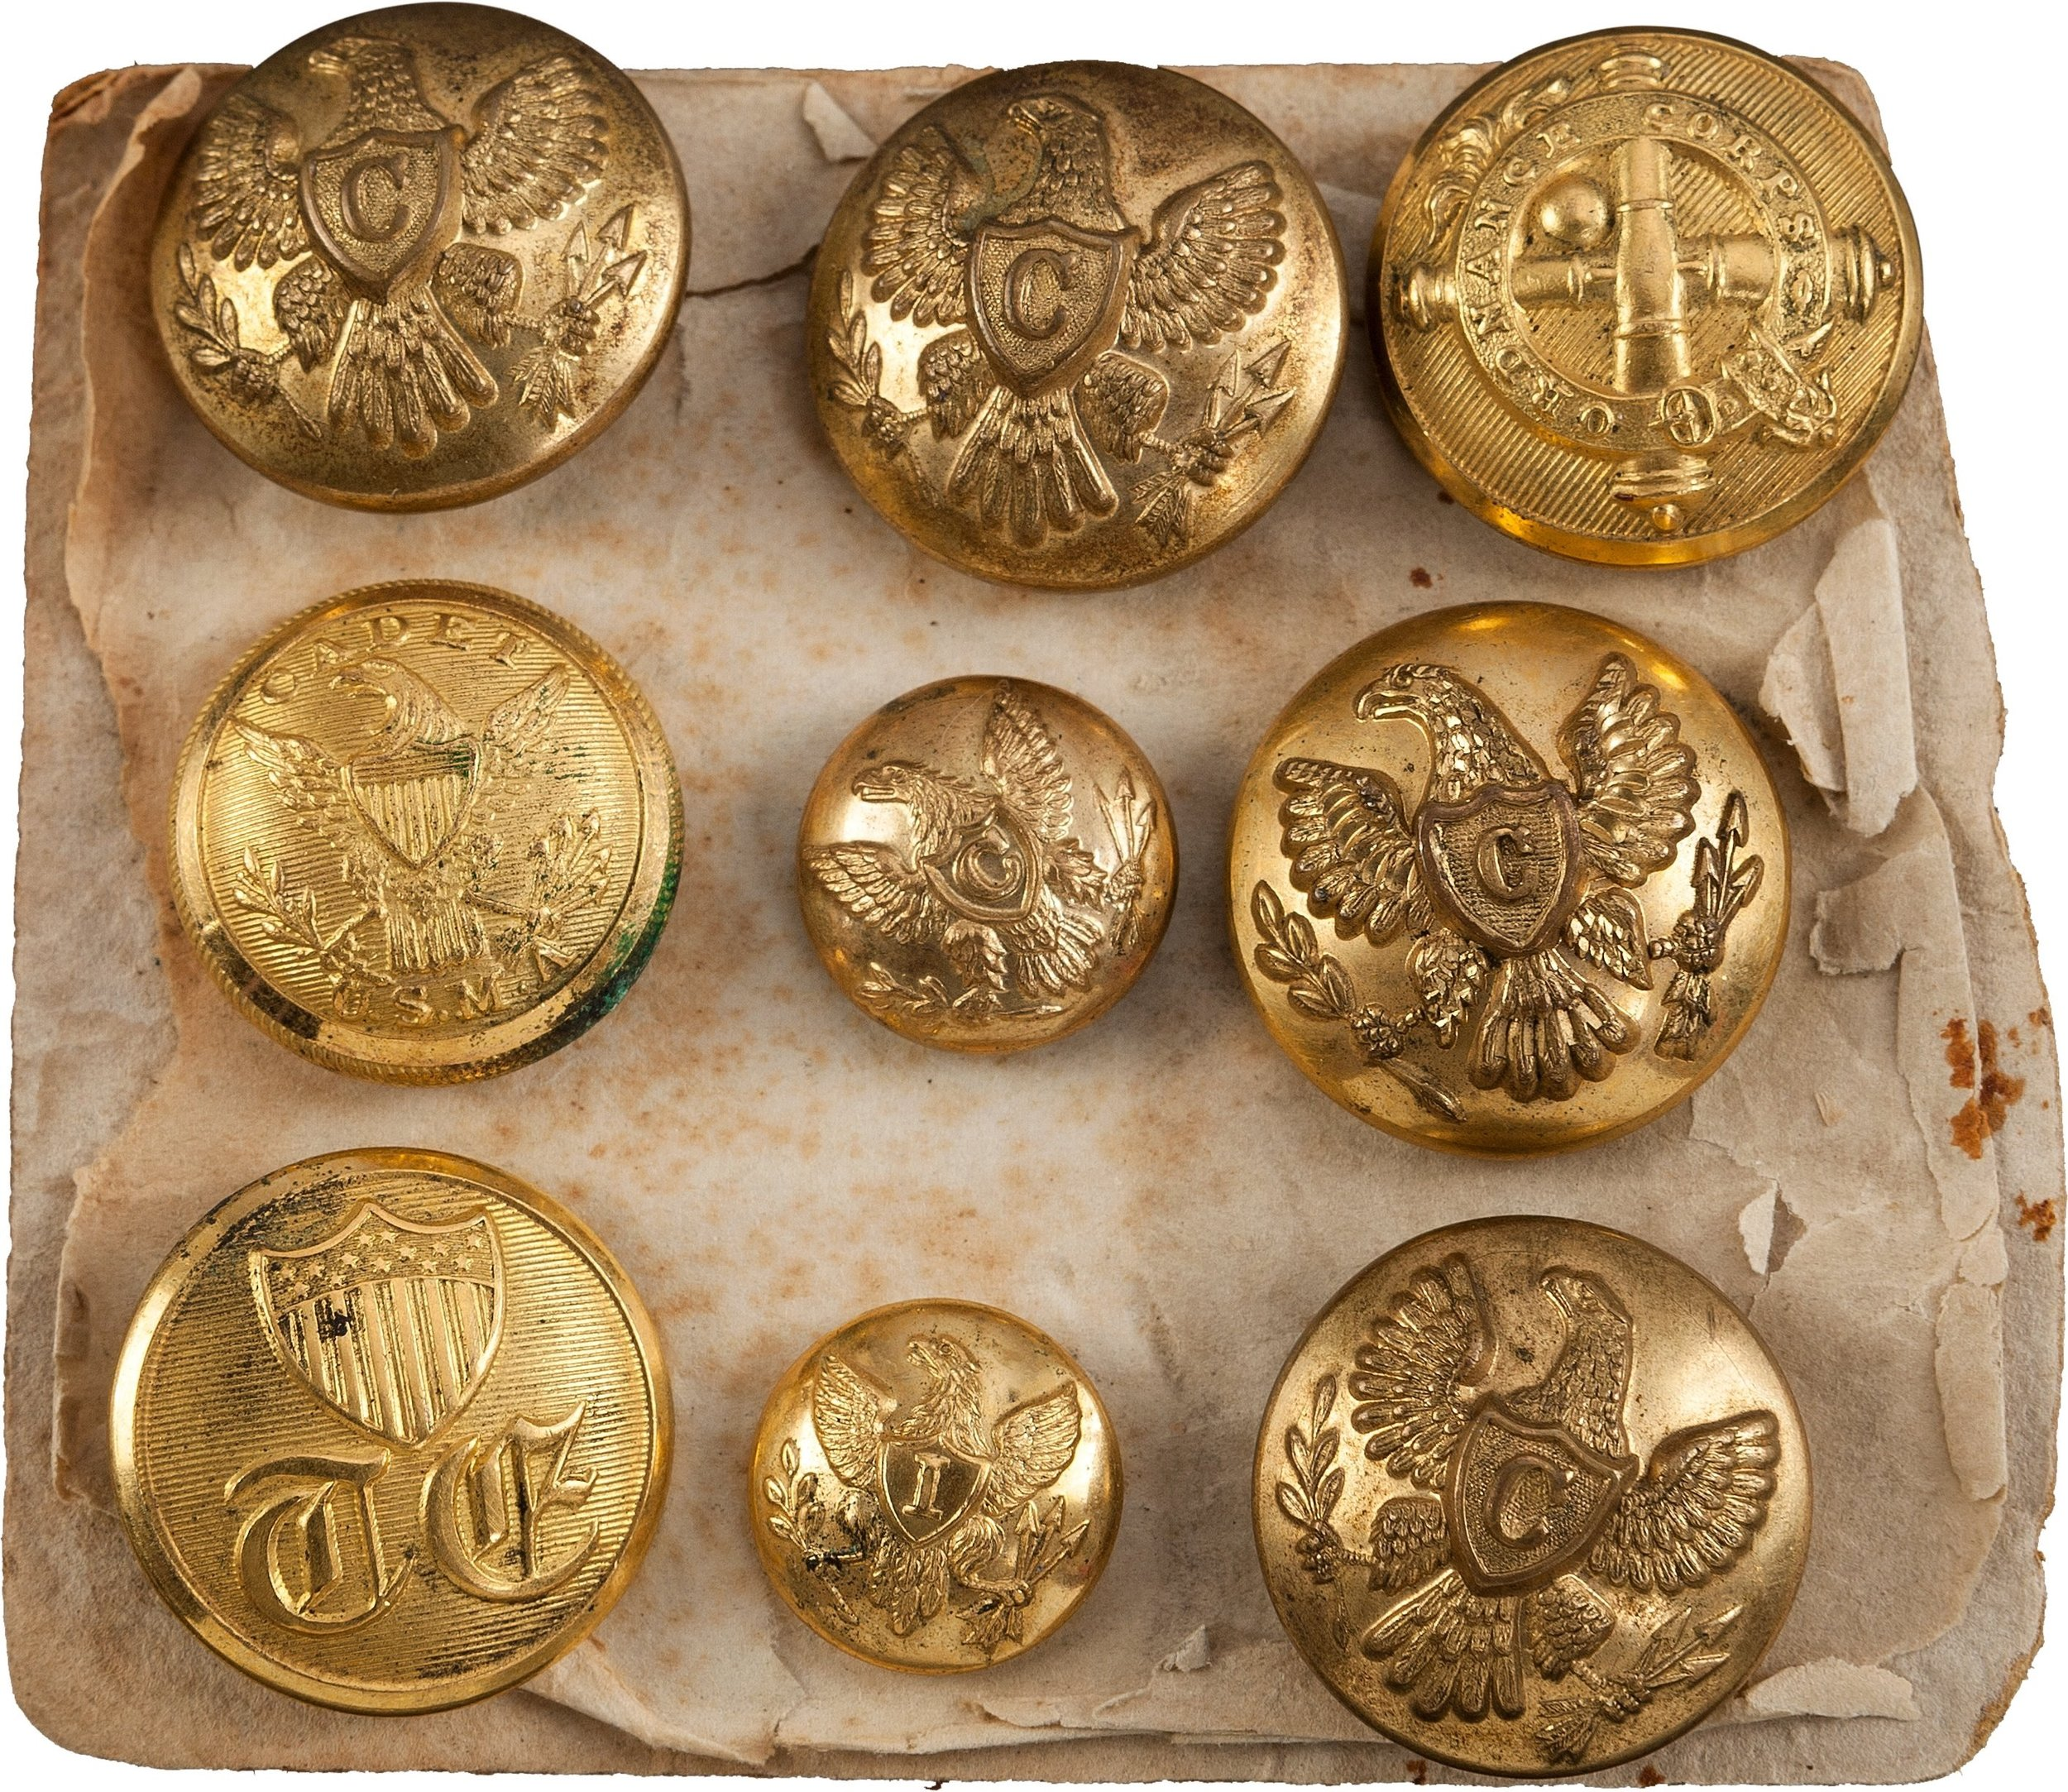 George A. Custer Uniform Buttons